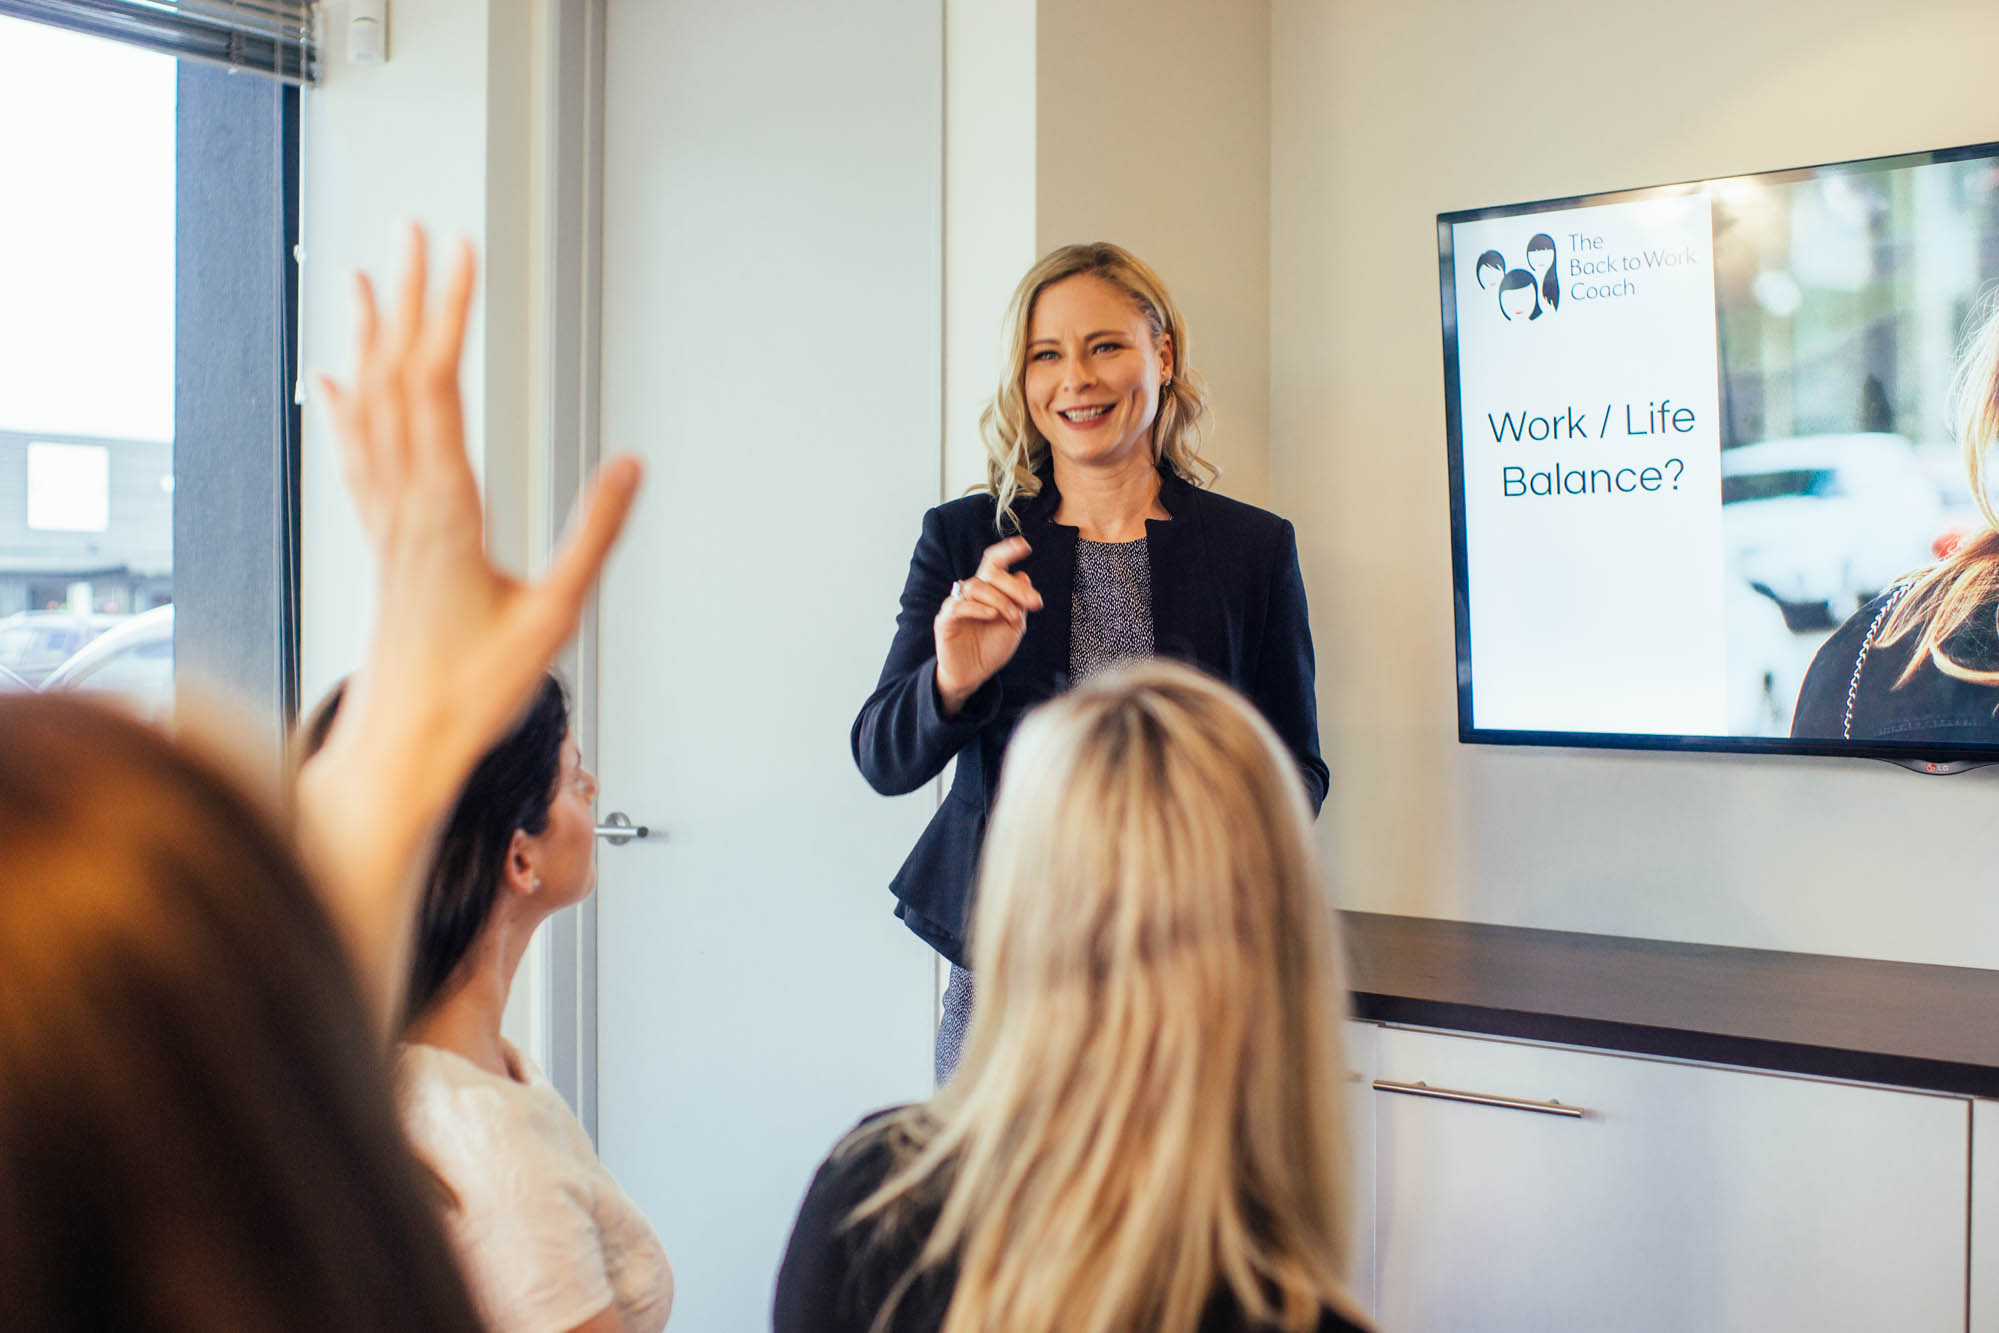 The Back to Work Coach Workshops